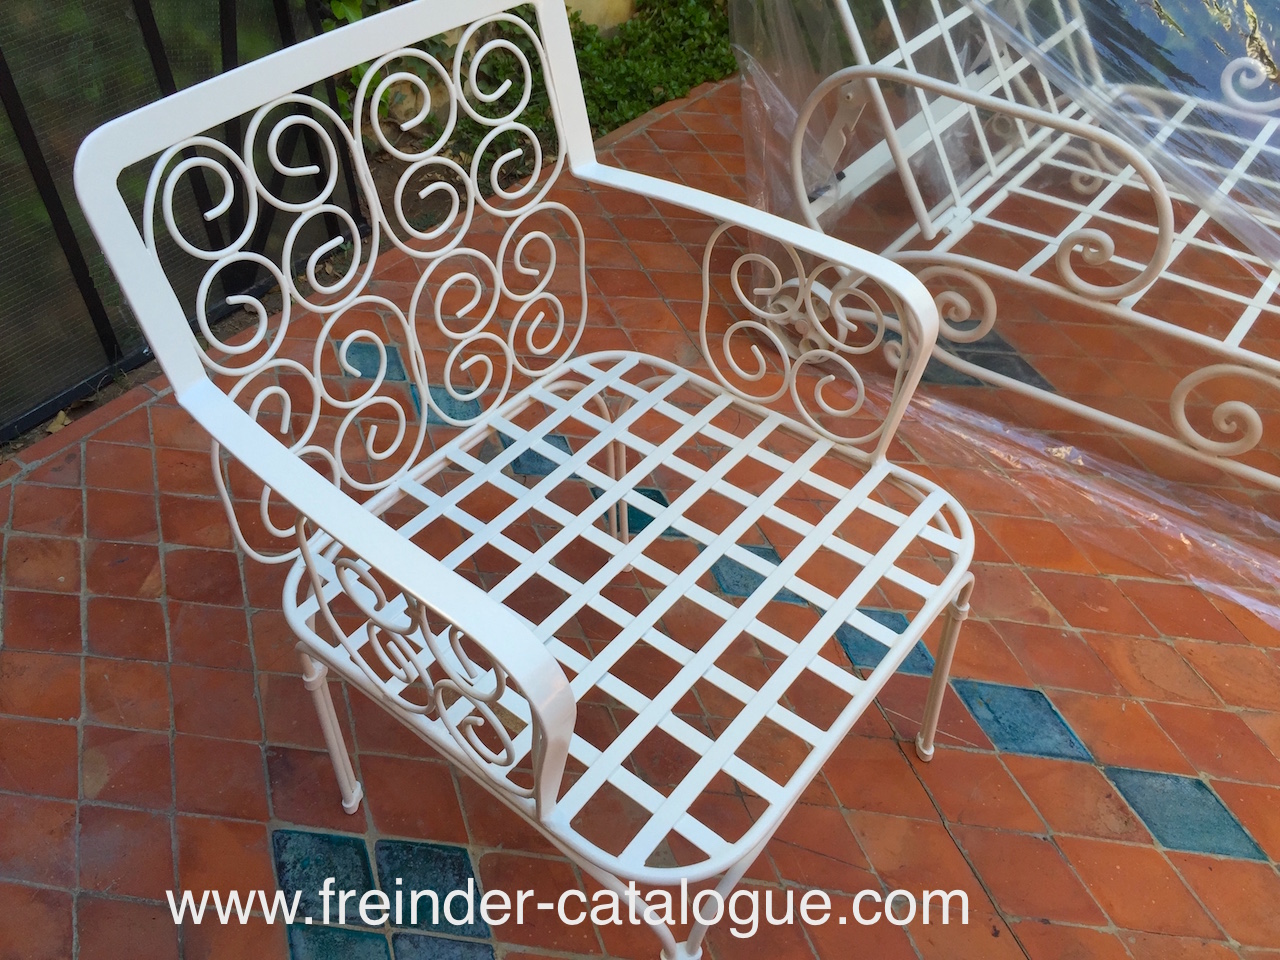 chaise en fer forge design maroc marrakech